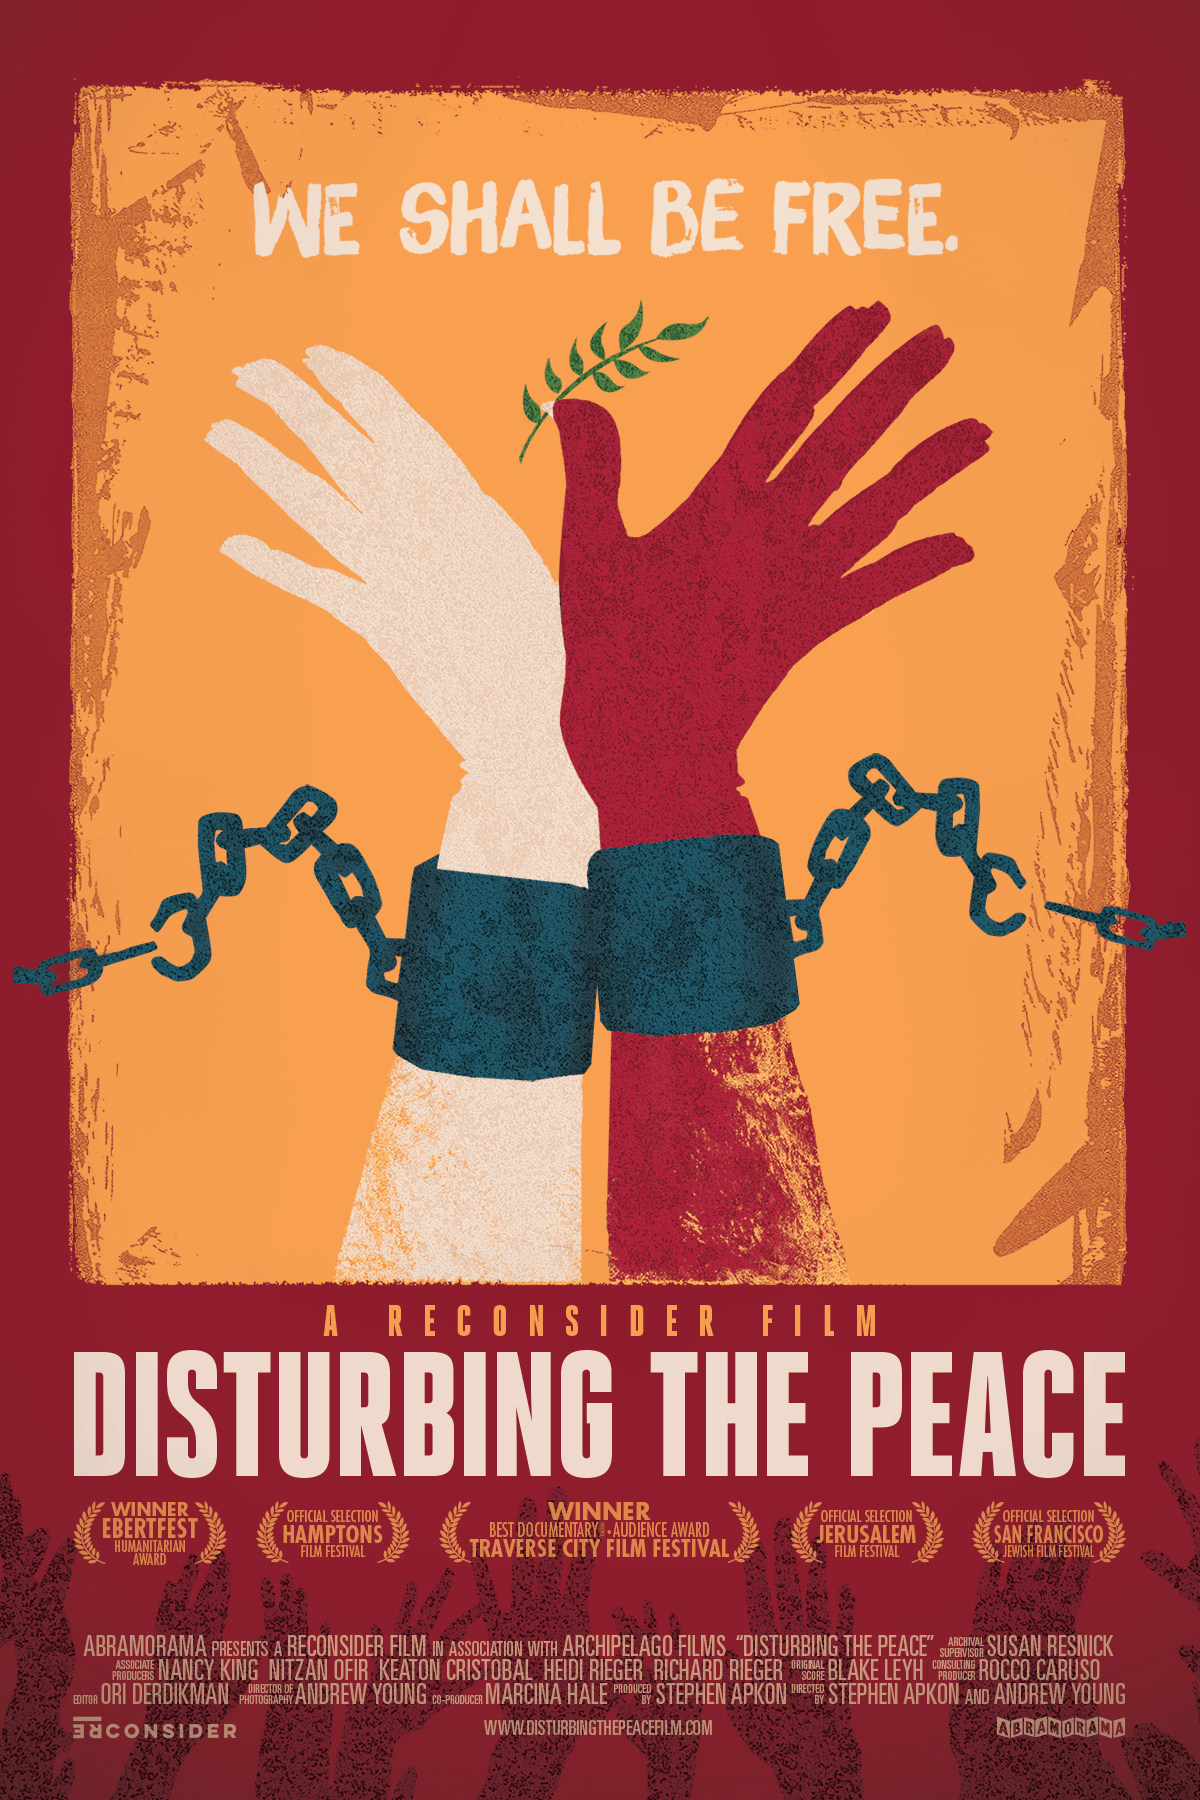 Disturbing the peace - Film